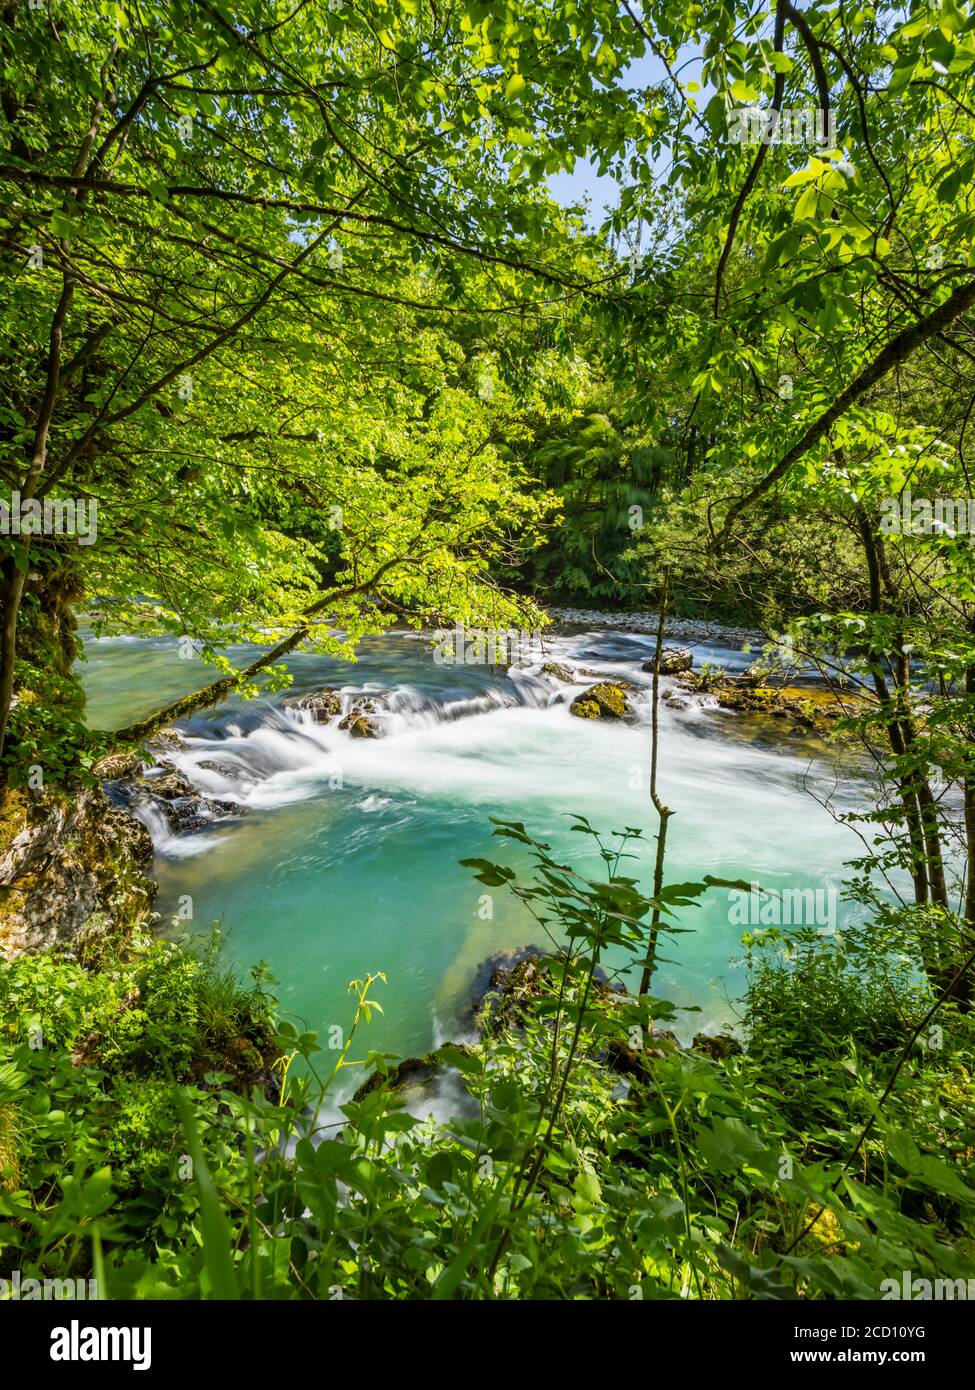 Small tributary river Krasicevic into Kupa river and cascading waterflow barrier nearby Stock Photo